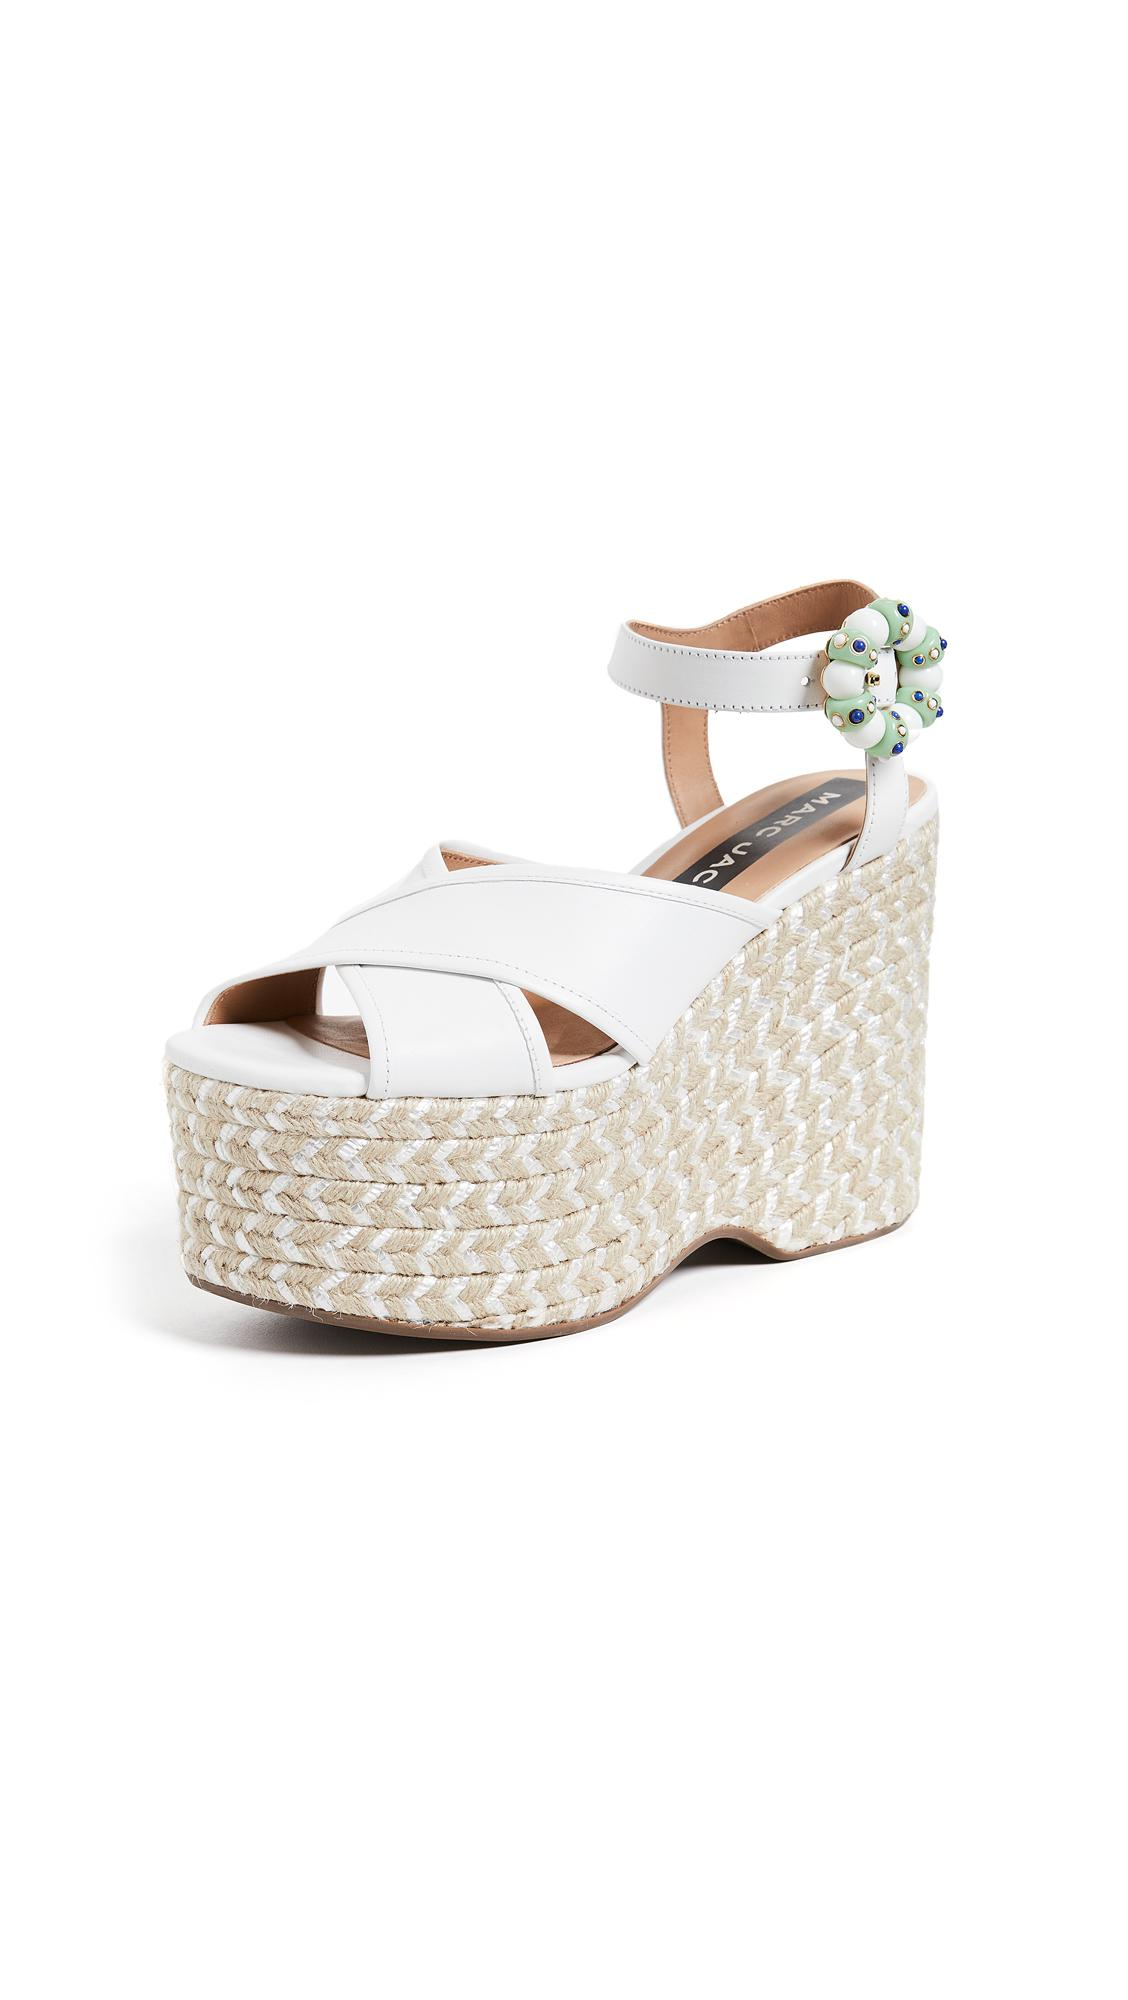 63e3d49ba000 Marc Jacobs - White Rowan Espadrille Wedges - Lyst. View fullscreen